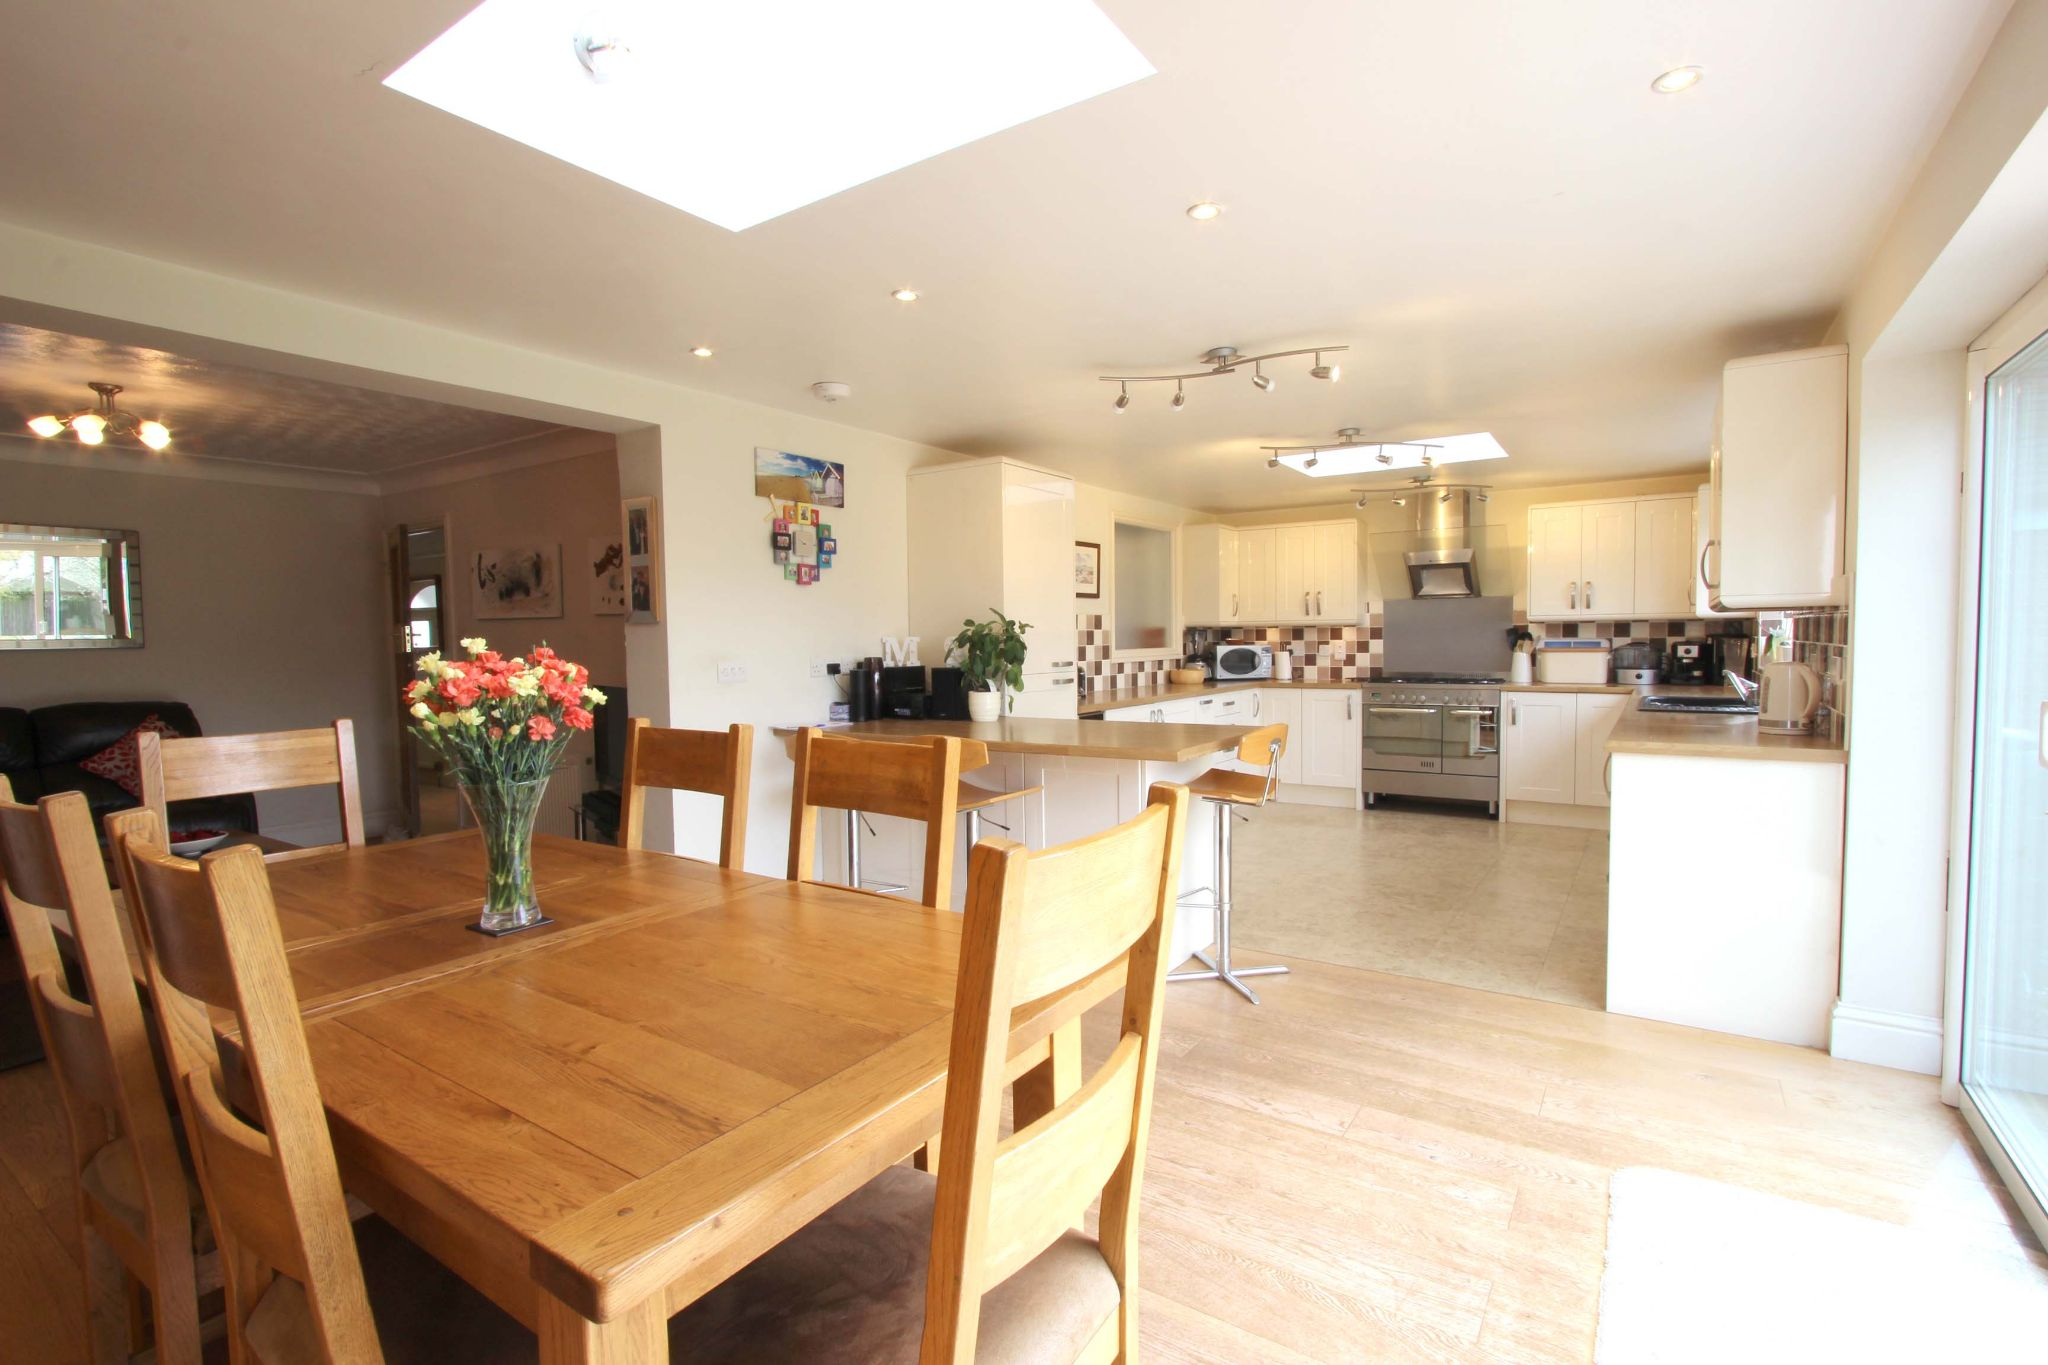 4 bedroom chalet house SSTC in Potters Bar - Photograph 2